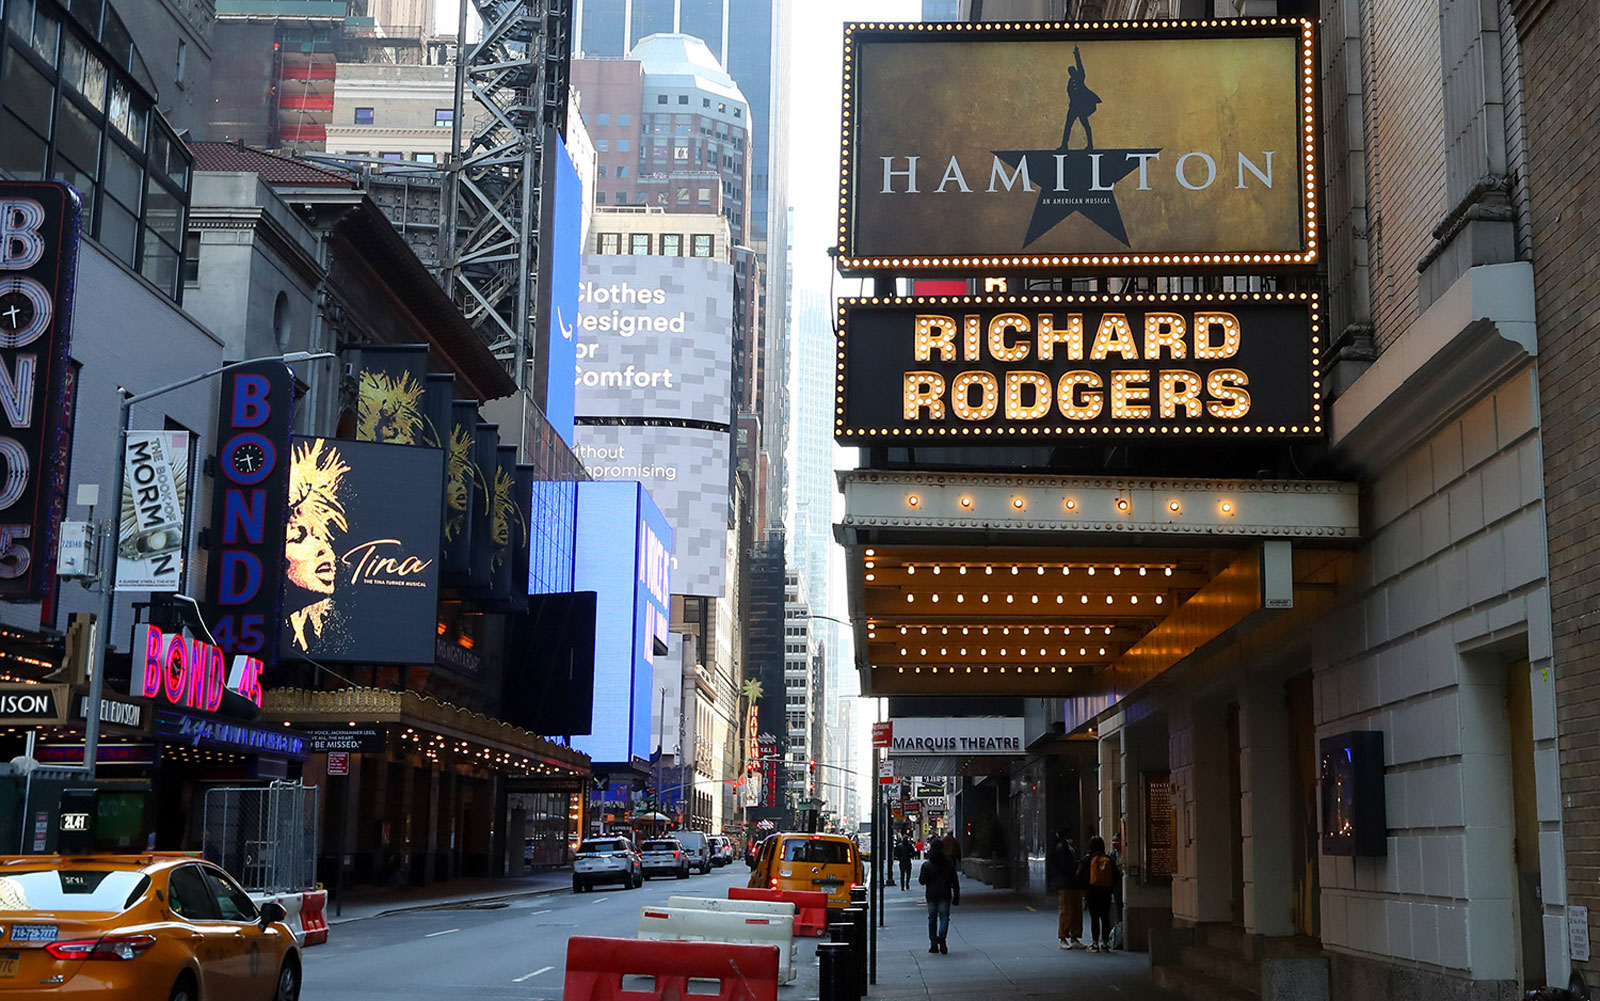 Broadway theater signs